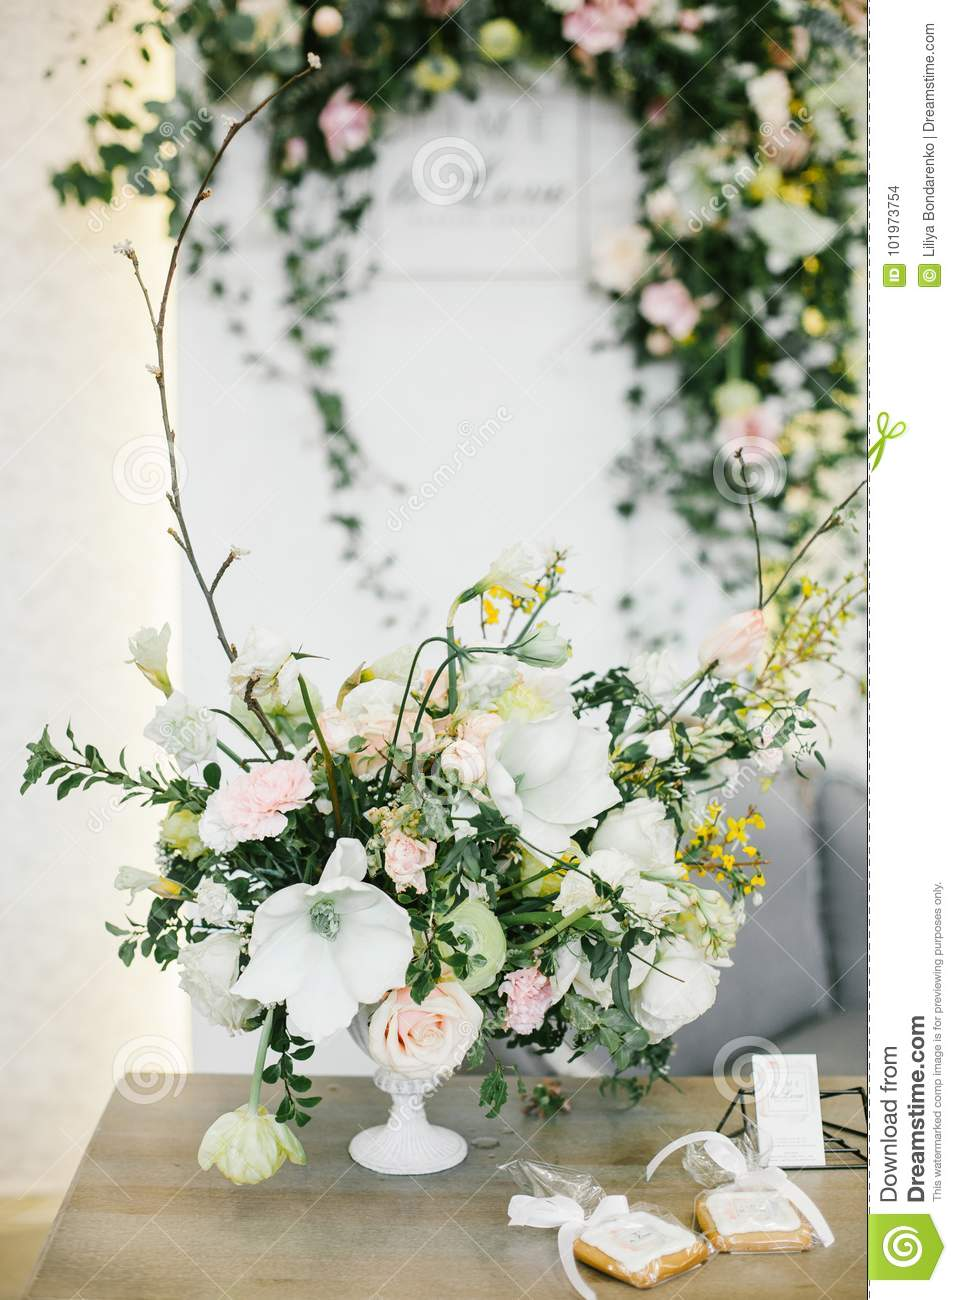 Wedding Table Centerpieces. Stock Photo - Image of elements ...